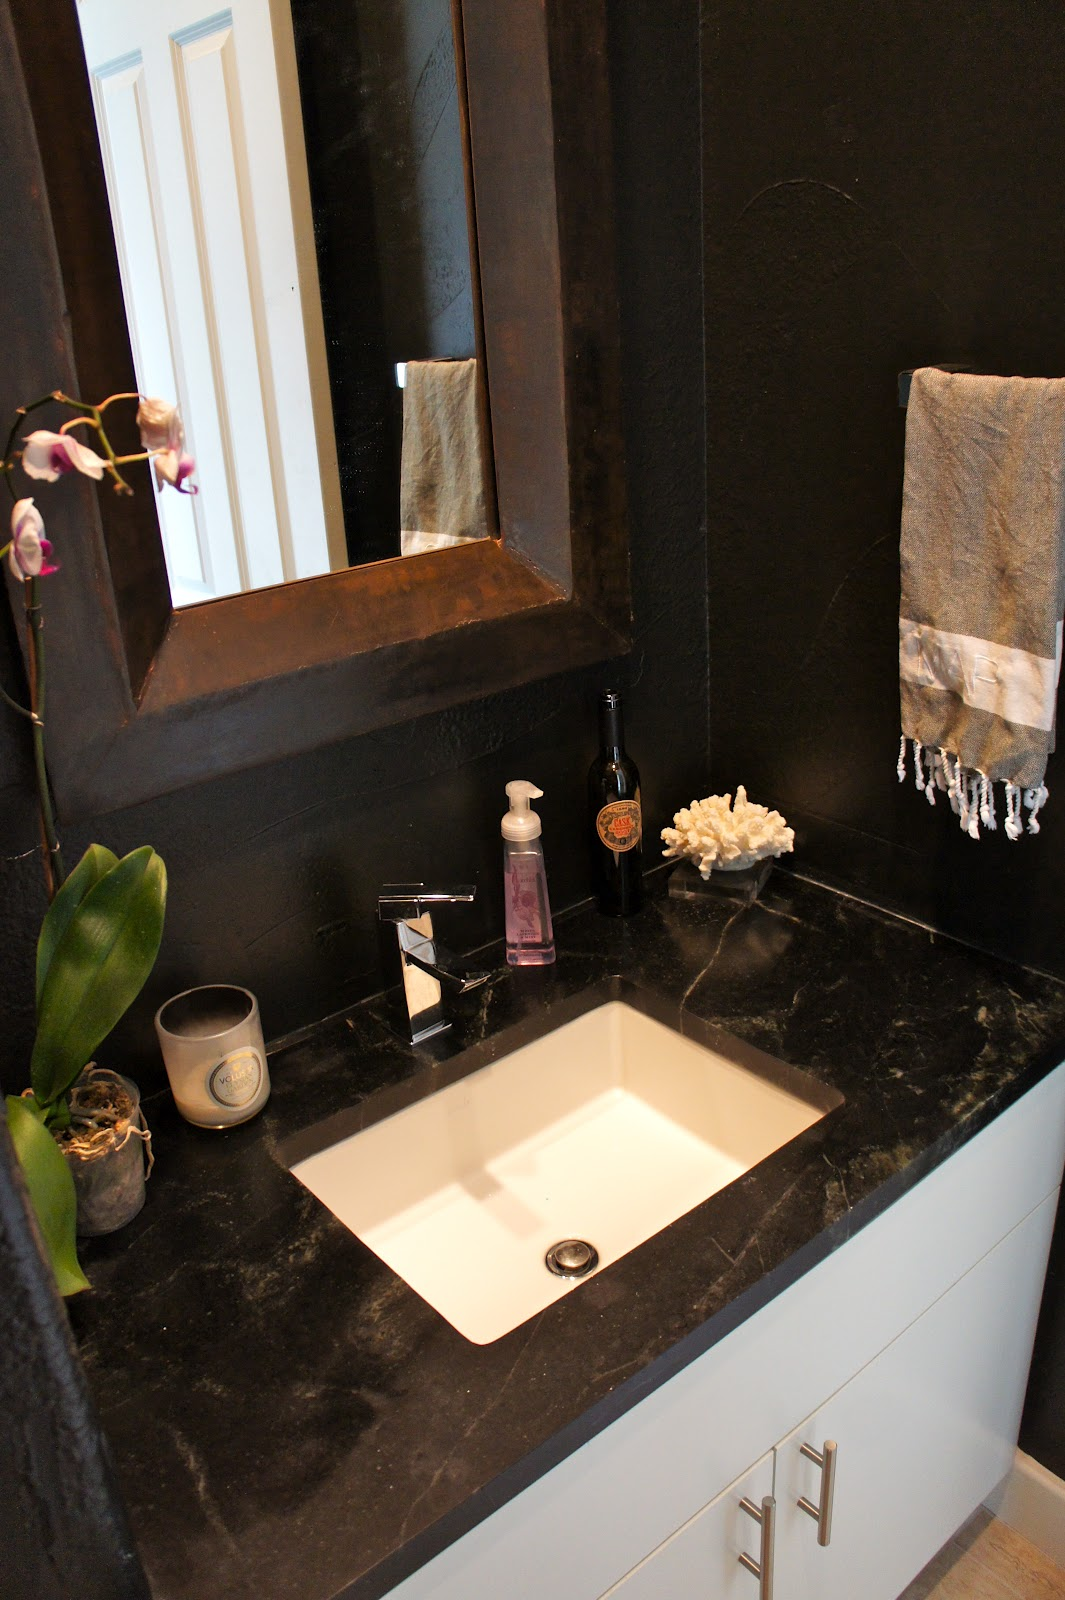 soapstone bath sinks kitchen countertops cabinets pinterest best and hbsoapstone on bathroom images